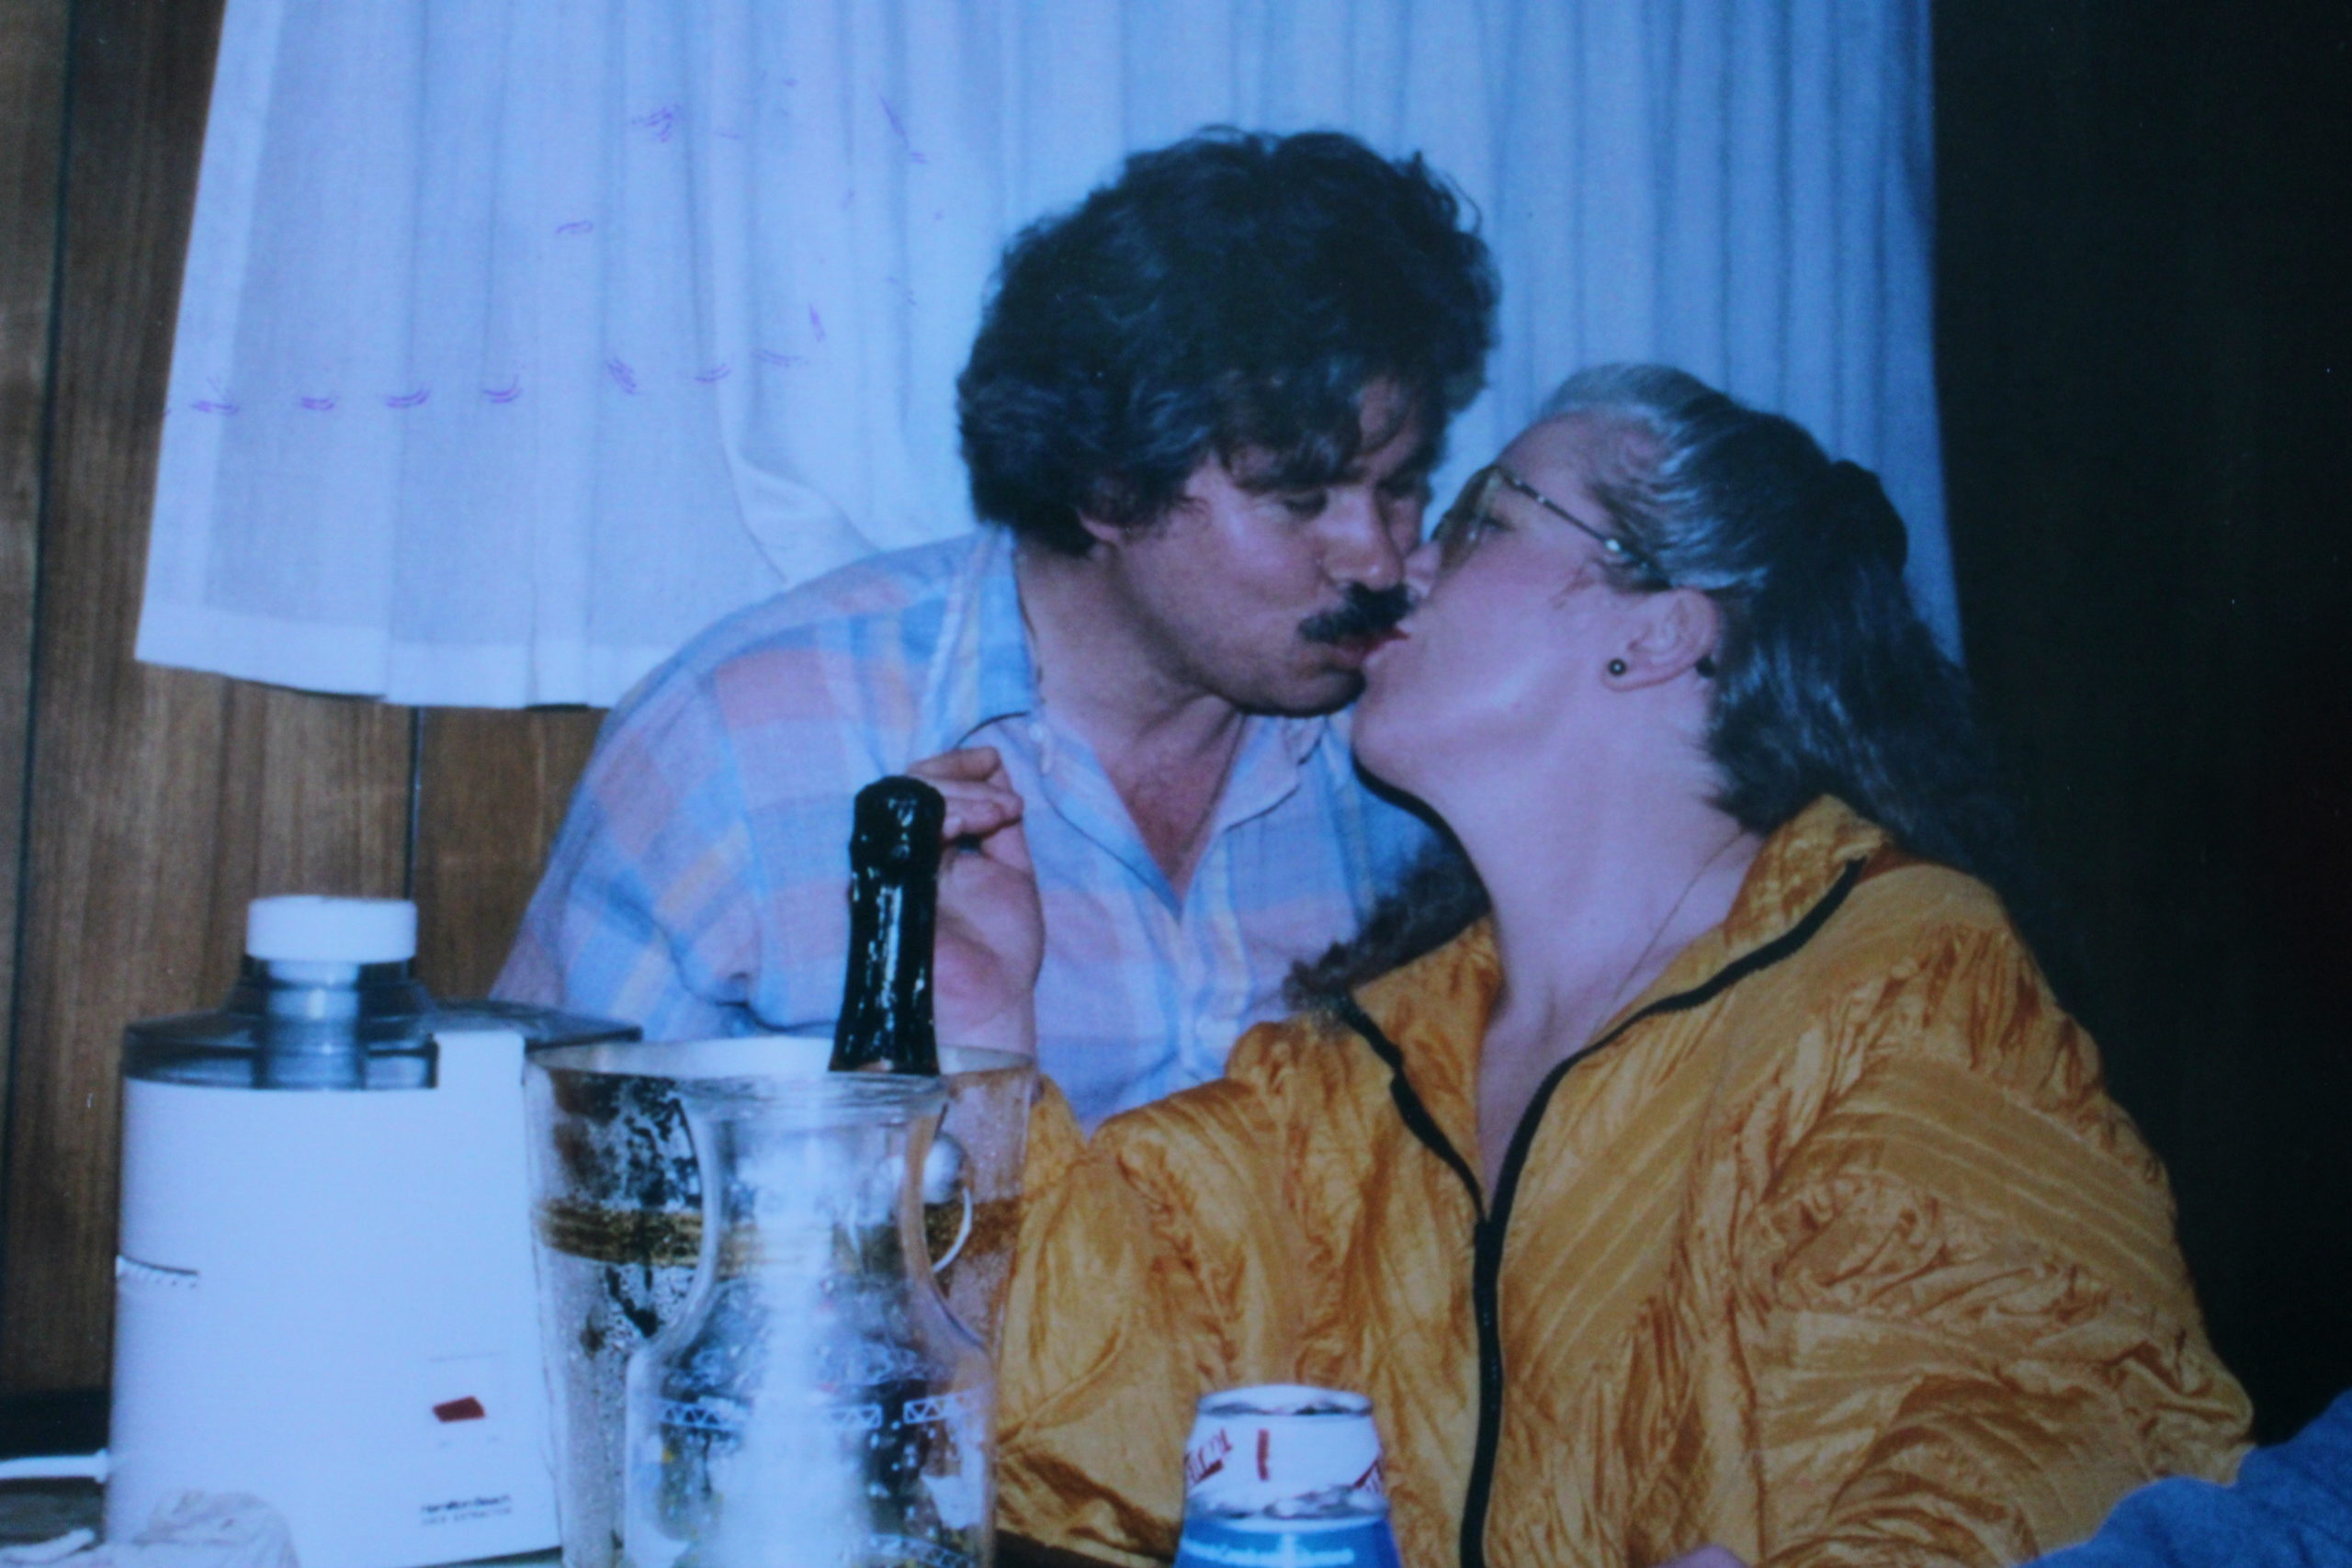 An older photo of a man and woman kissing